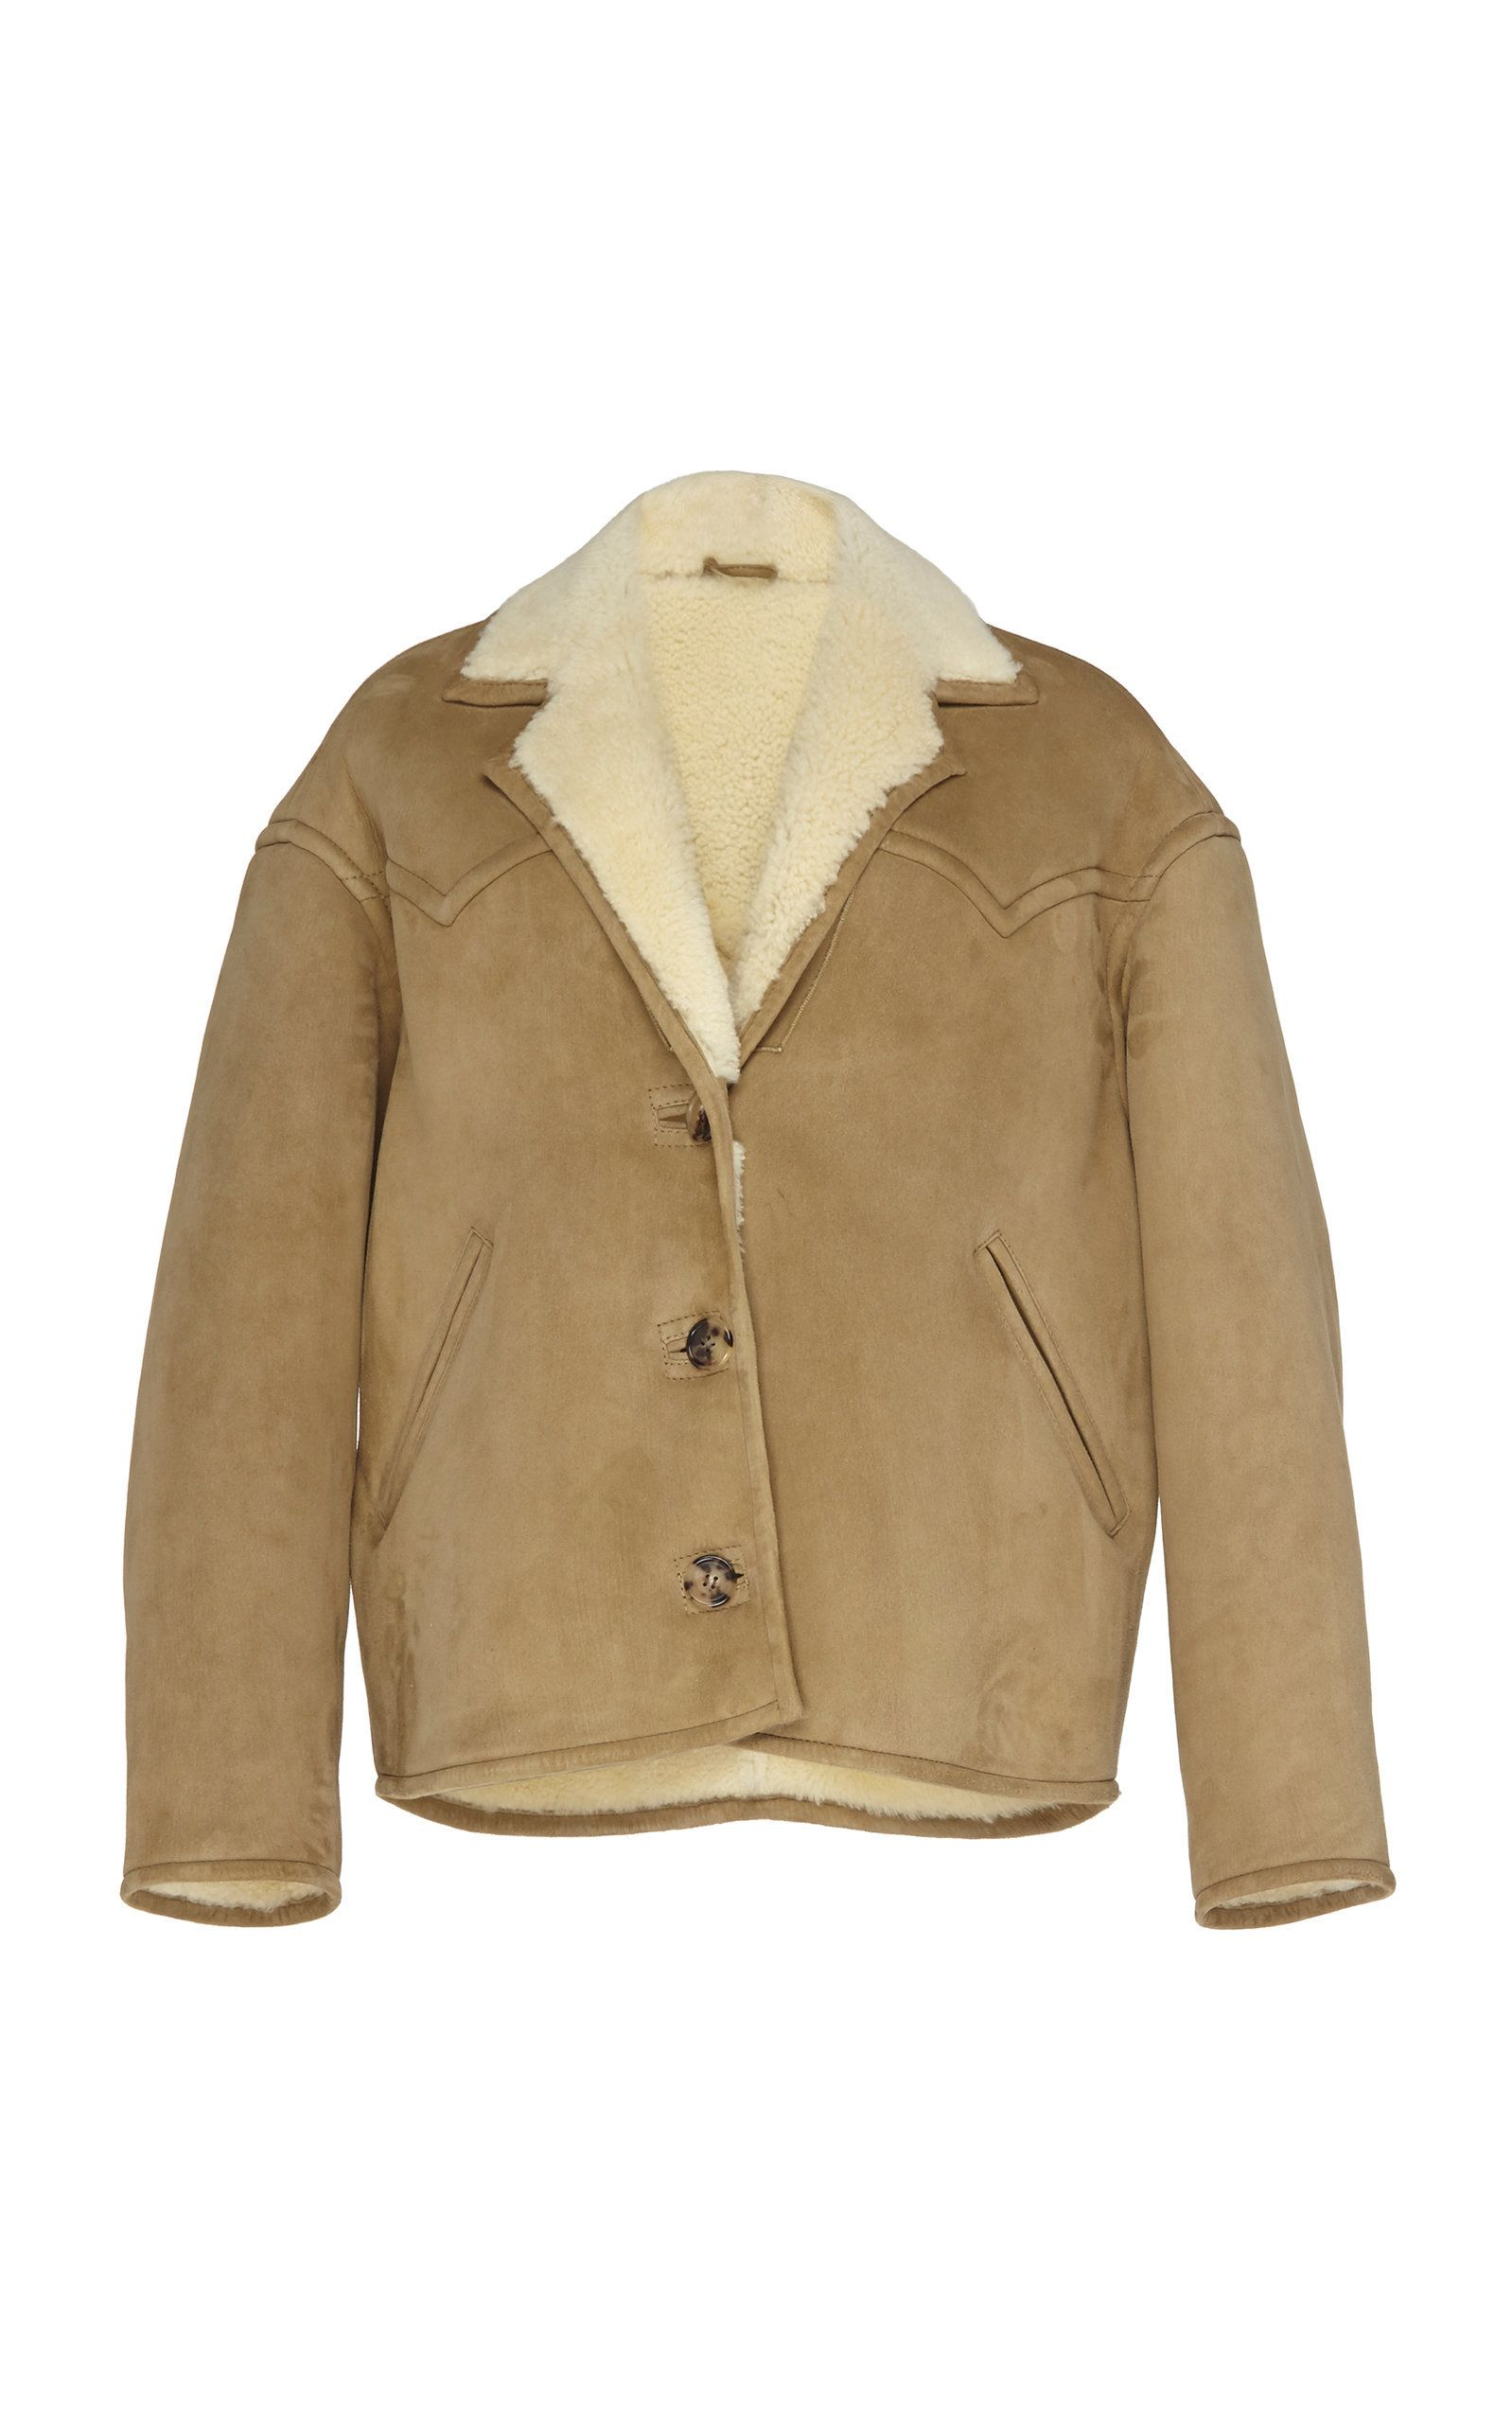 Isabel RIP Bomber Shearling Polyvore Jacket Fabio Pinterest 1WfqvcWg6